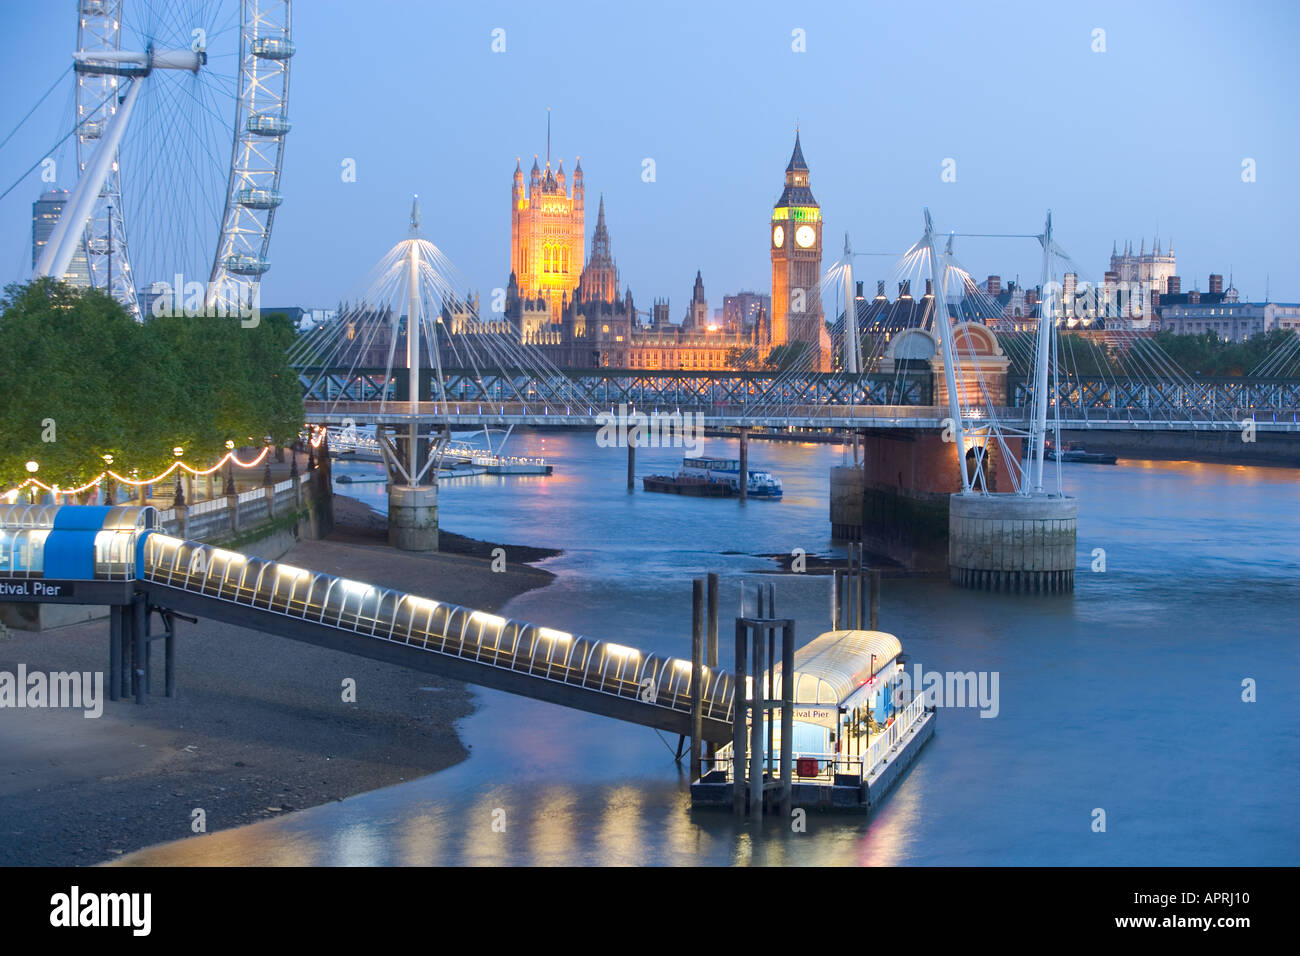 View of the London Eye and Big Ben from the River Thames London England UK Stock Photo